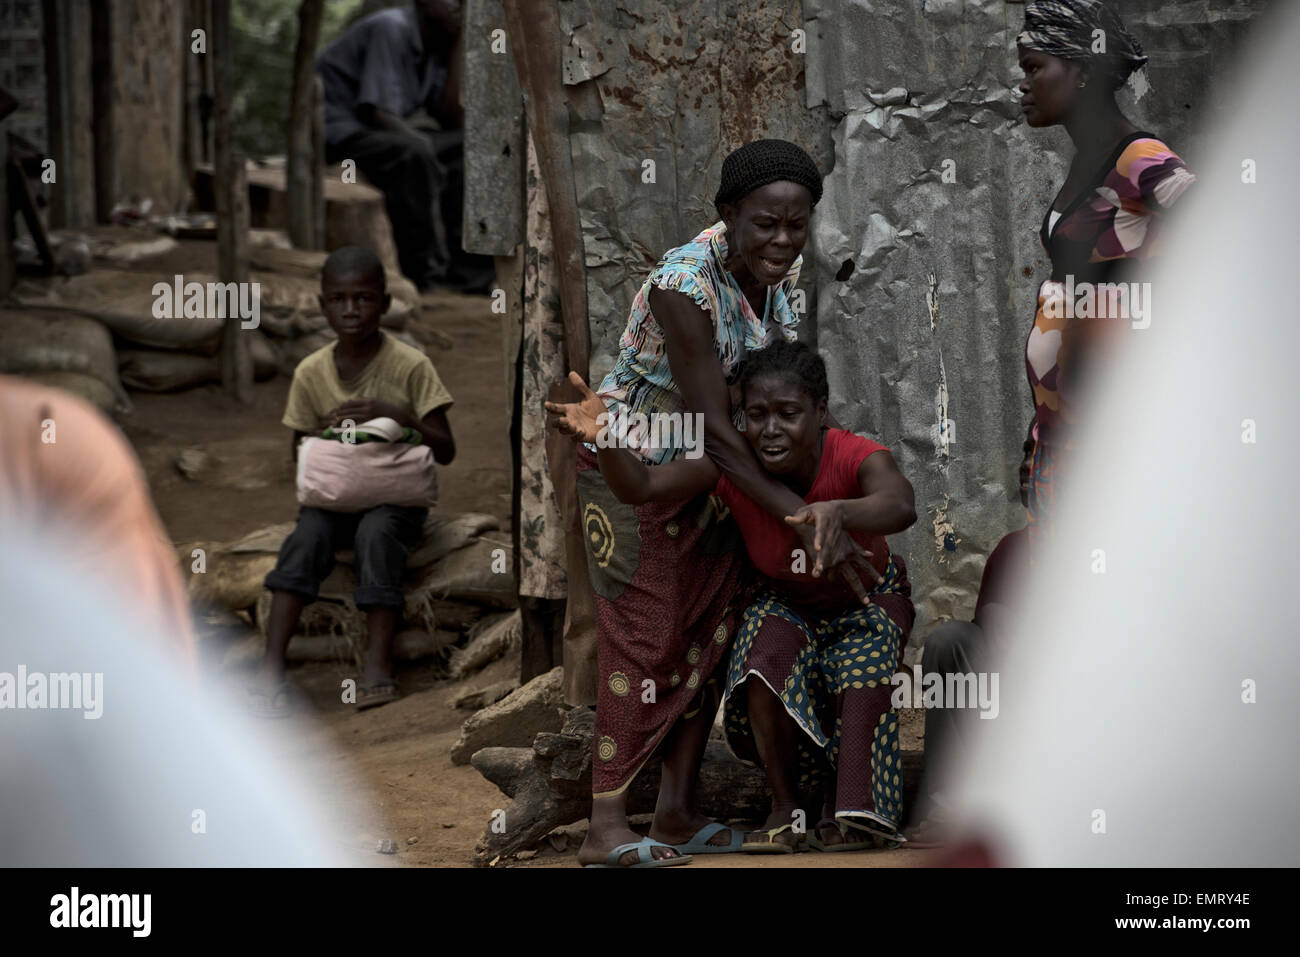 The wife of an Ebola victim breaks down after Liberian volunteer case investigation teams evacuated the Ebola victim - Stock Image